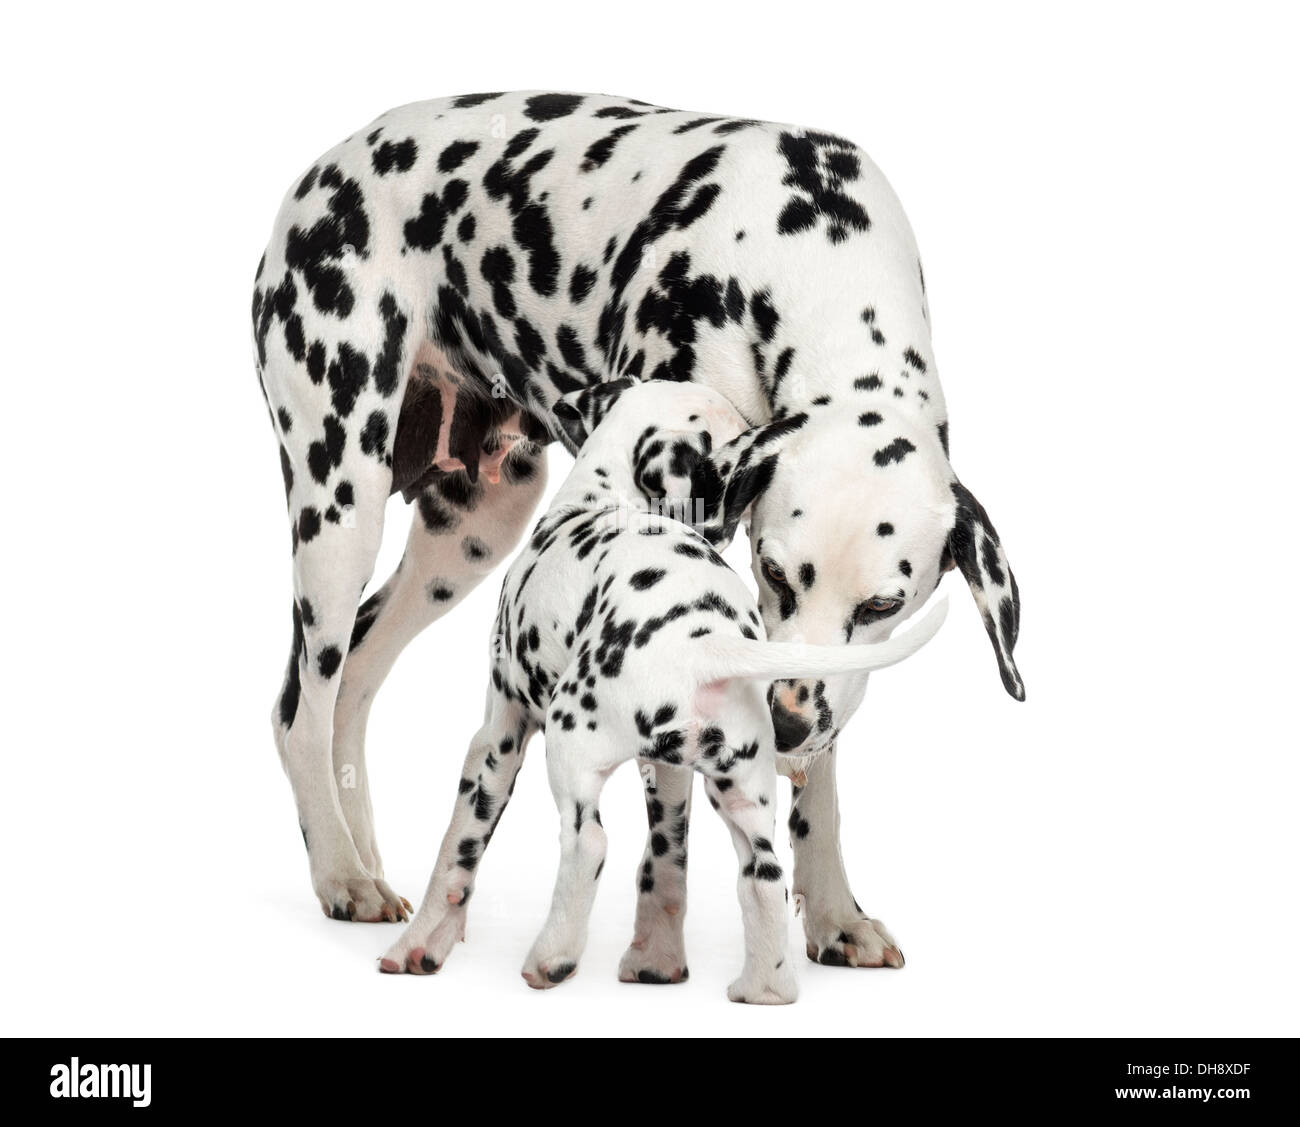 Dalmatian adult and puppy sniffing each other against white background - Stock Image